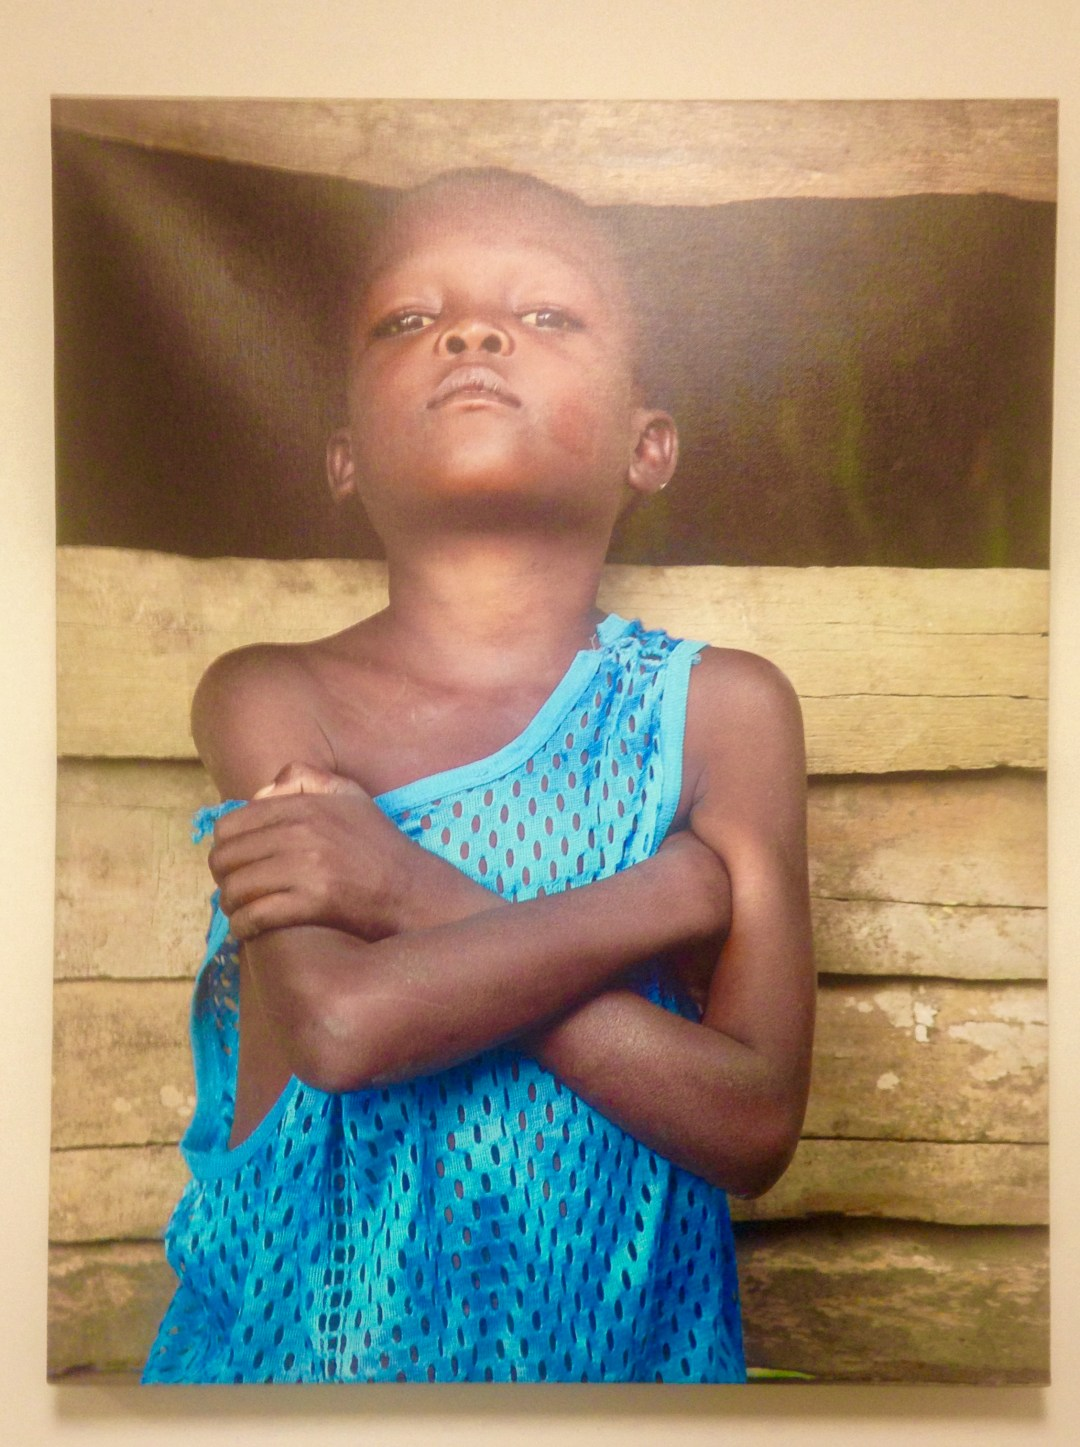 strong African child